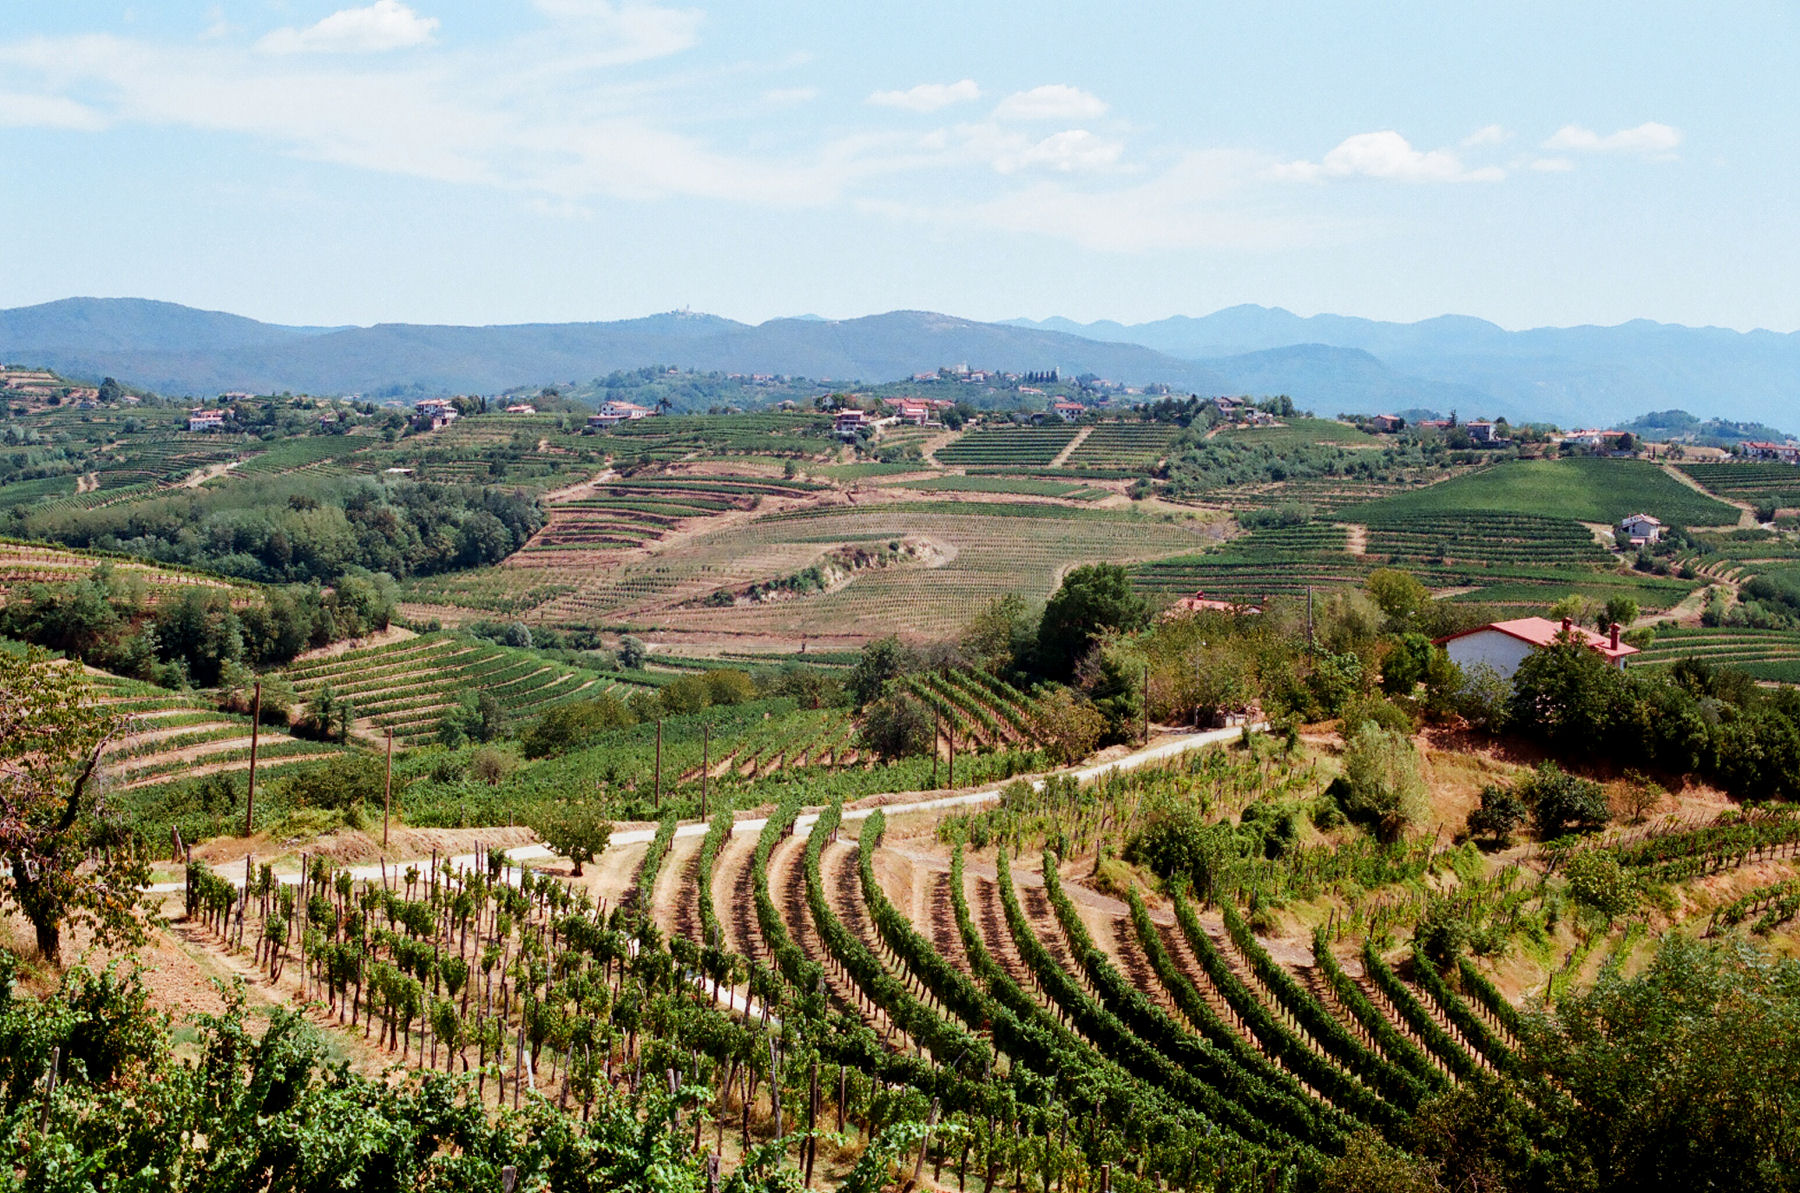 Hilly vineyards in the wine region of Goriska Brda in Slovenia